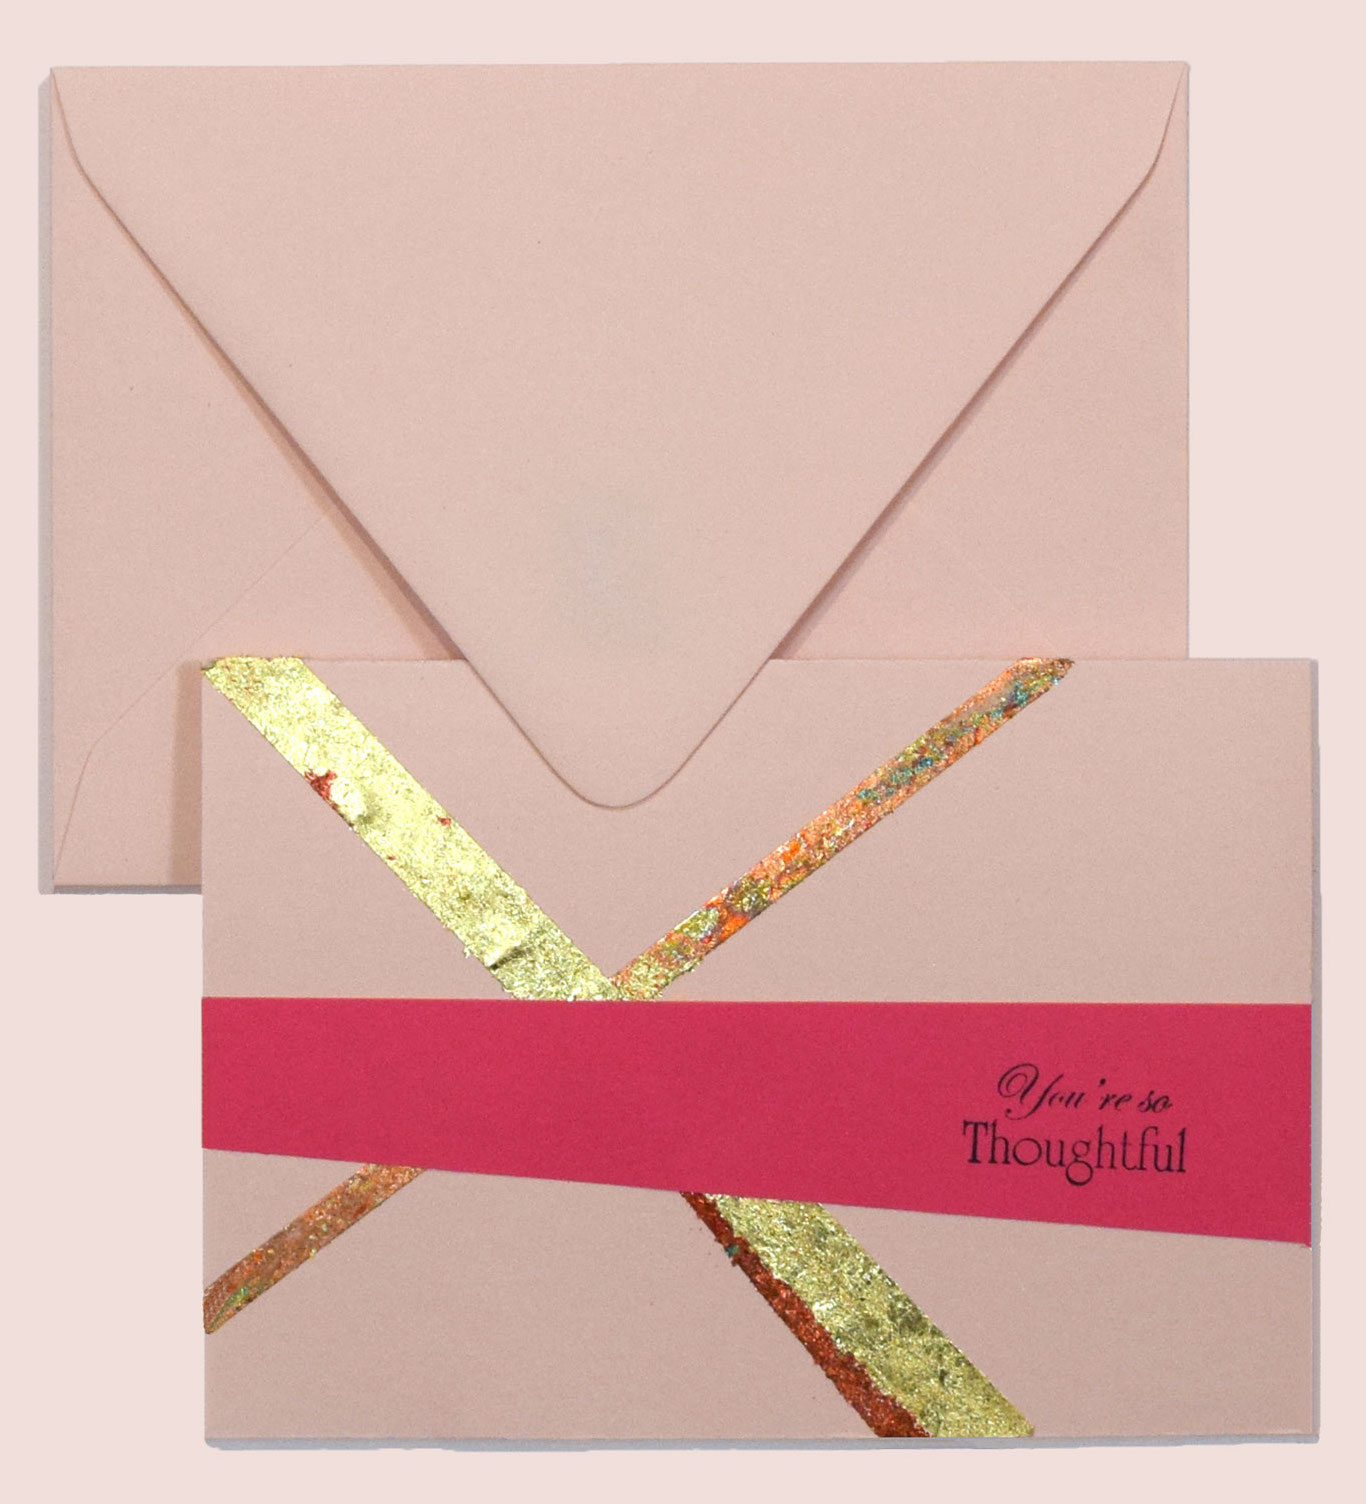 thoughtful letters - PaperPapersThoughtfulLetters03 - Thoughtful Letters